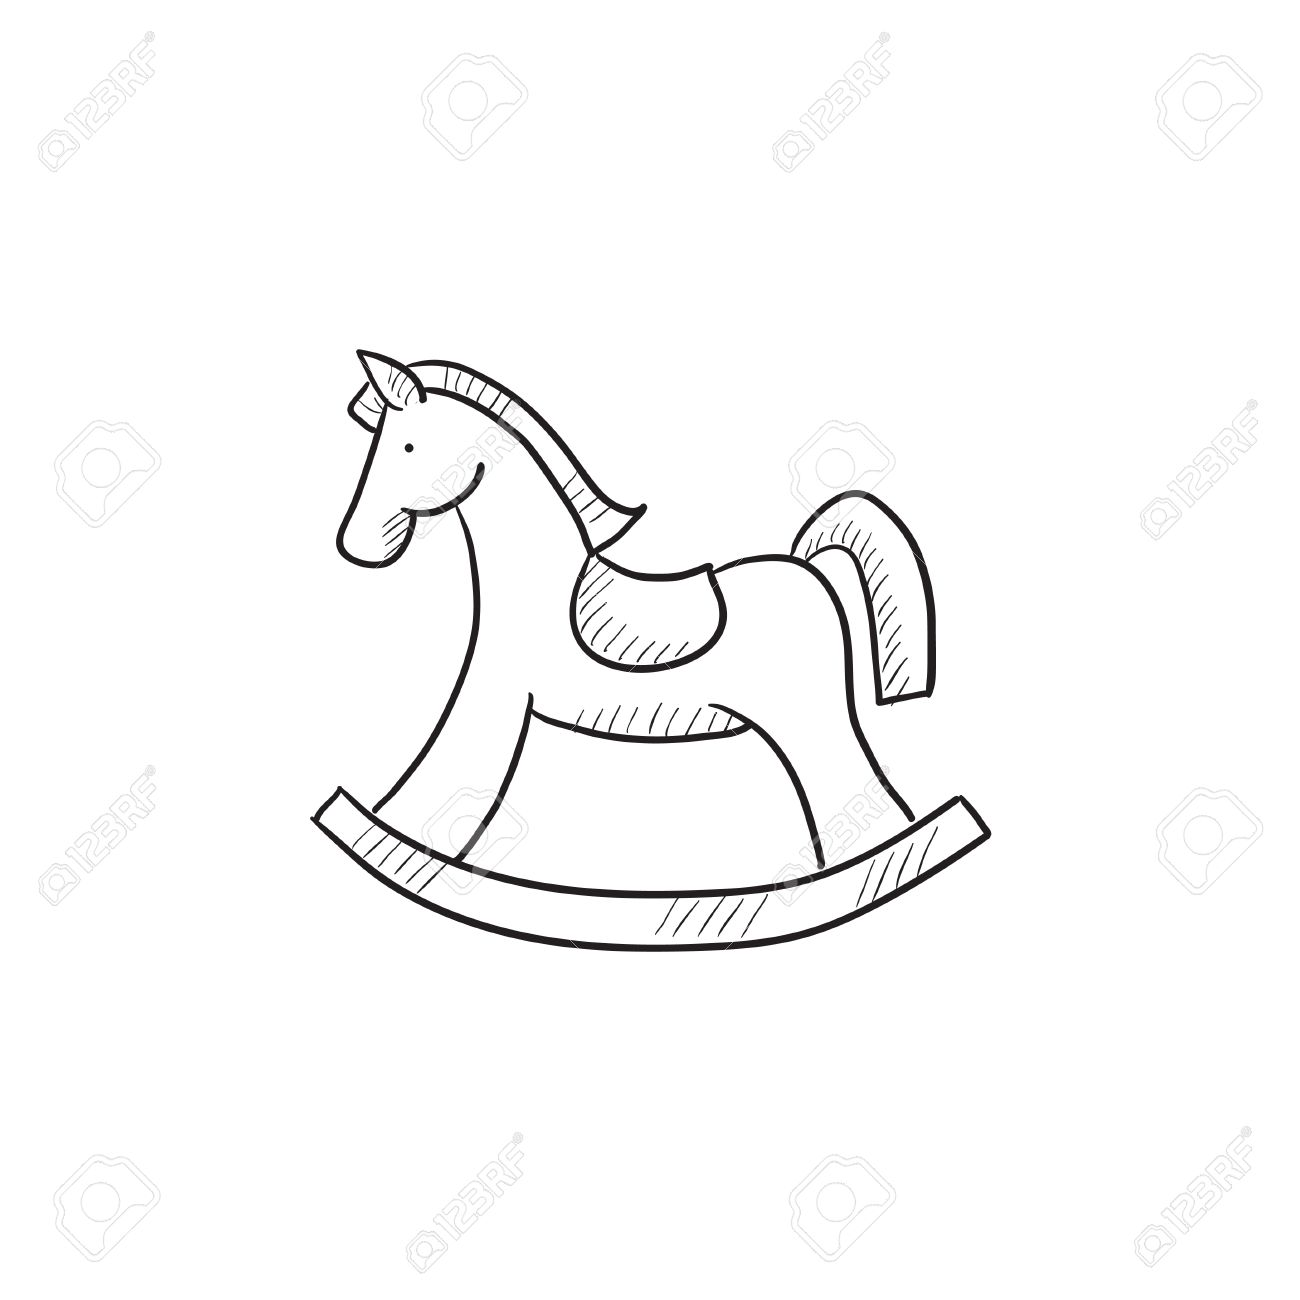 1300x1300 Rocking Horse Vector Sketch Icon Isolated On Background. Hand